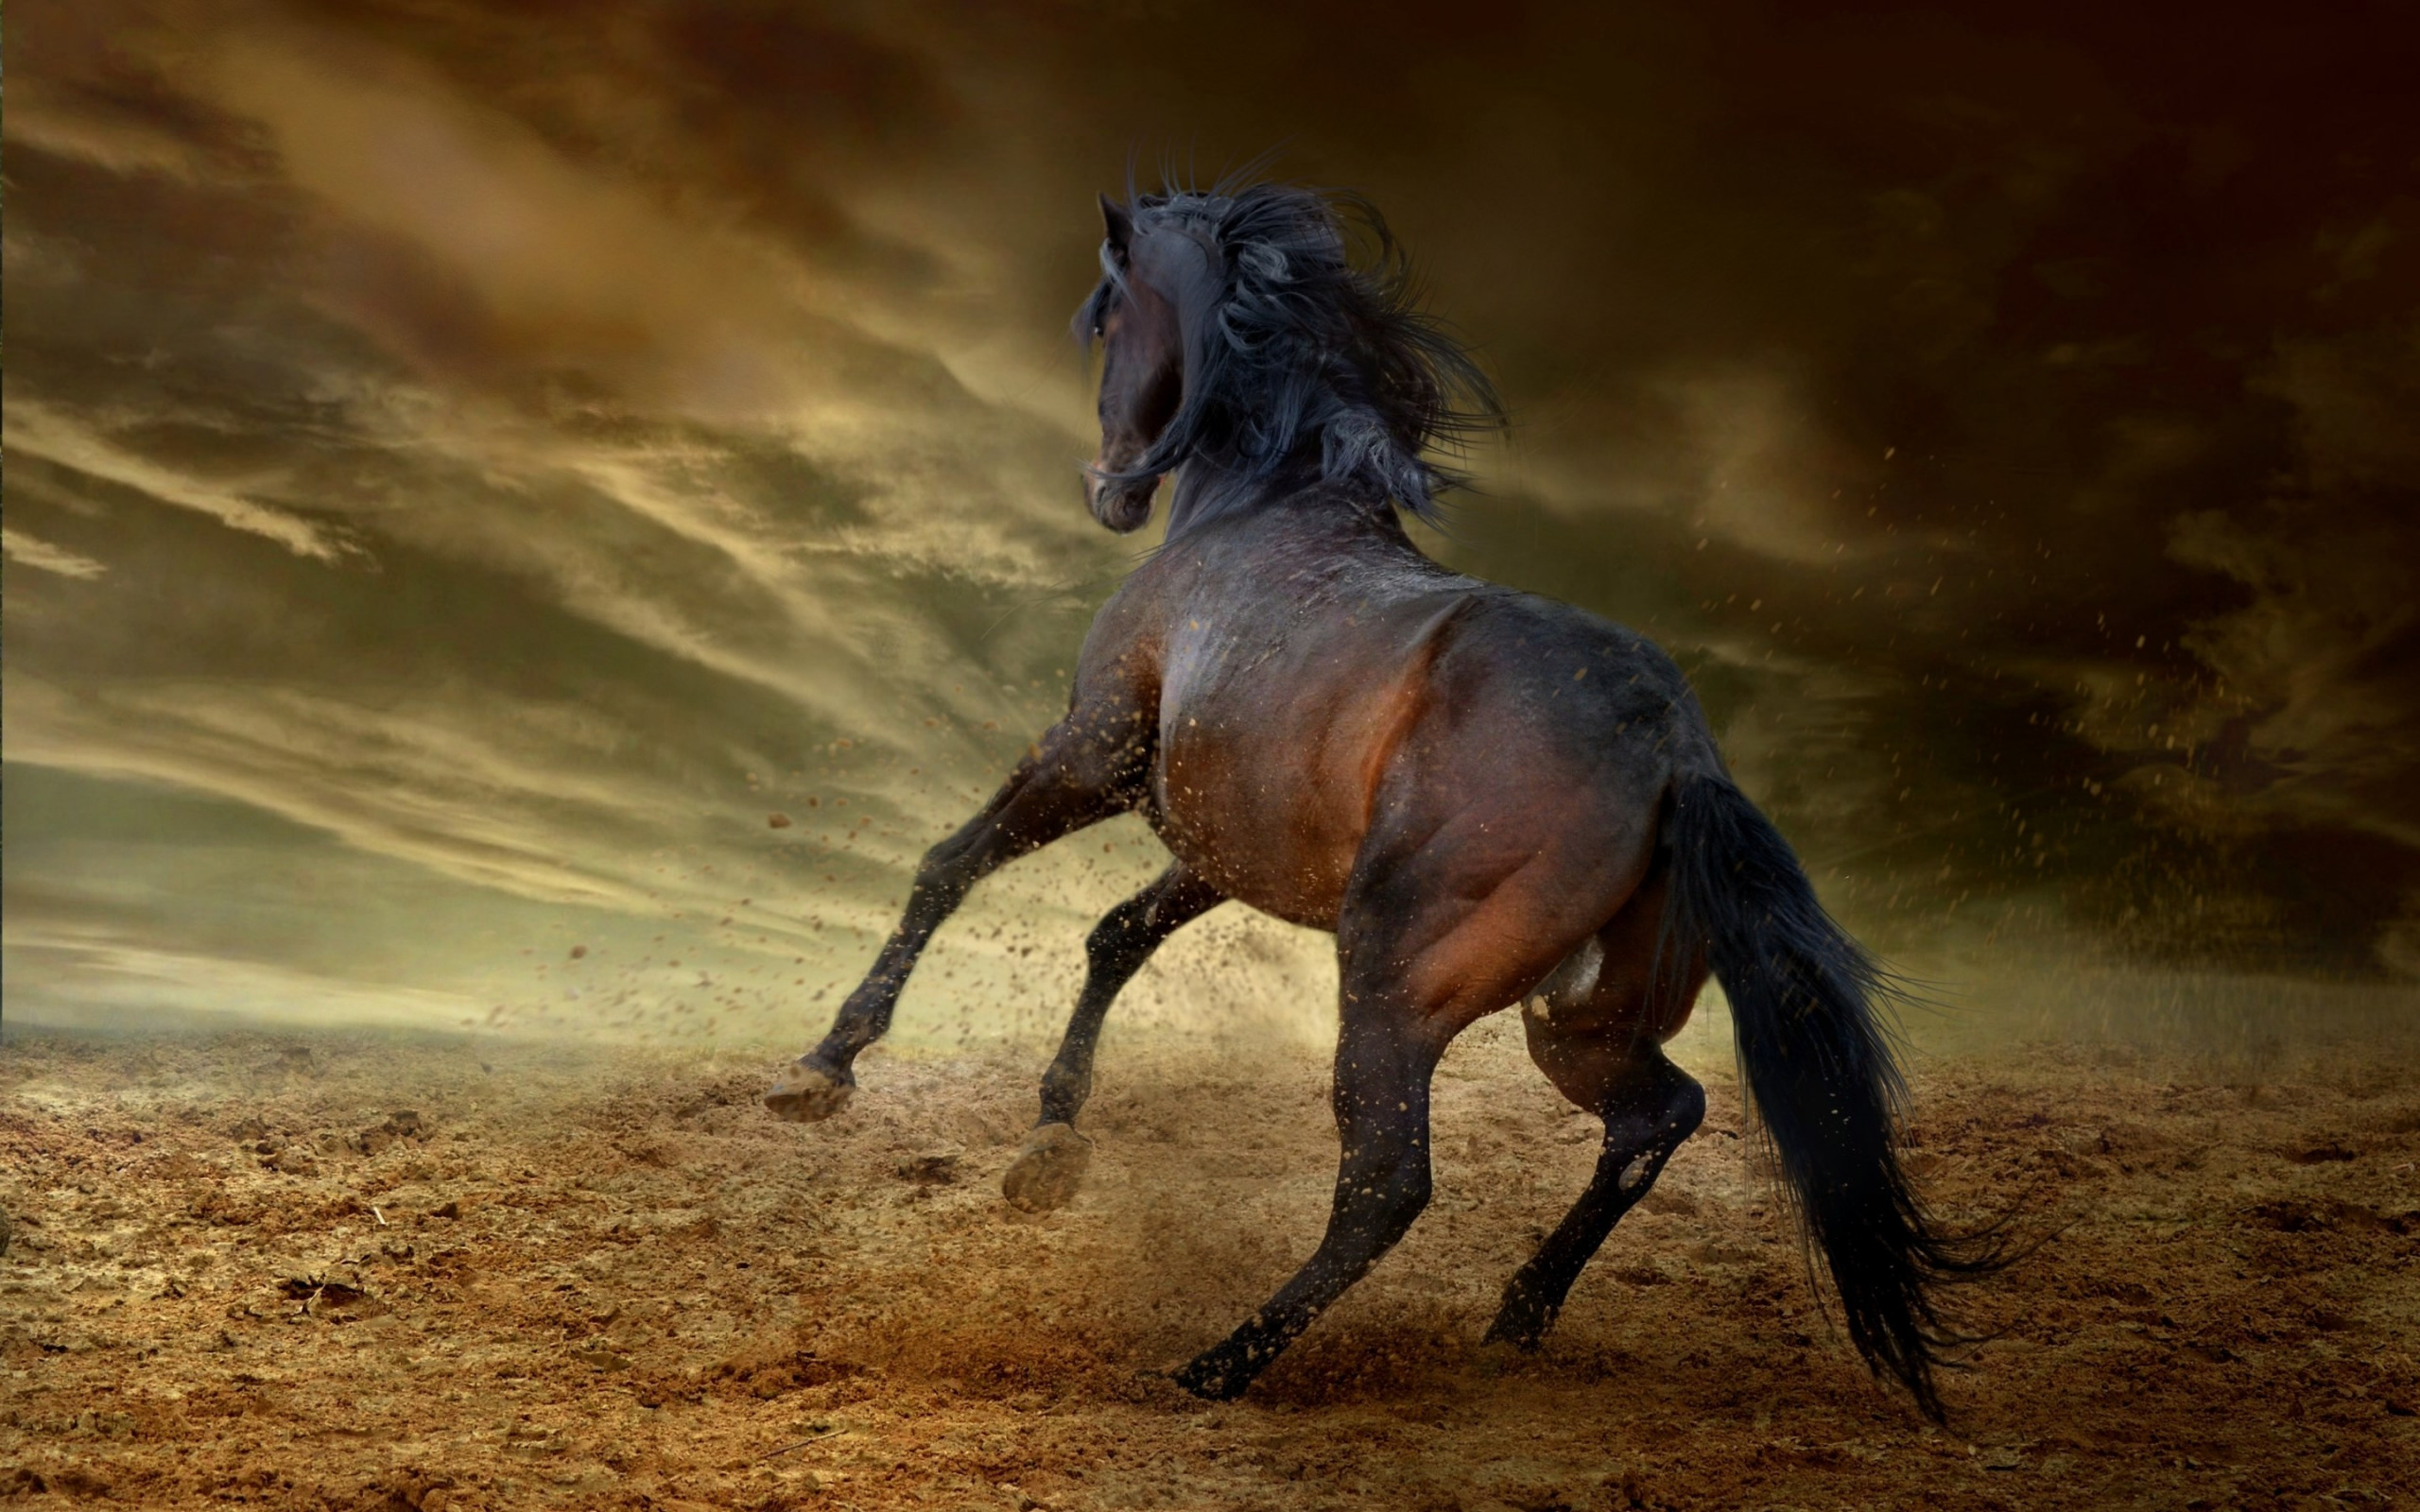 Horse freedom wallpaper 2560x1600